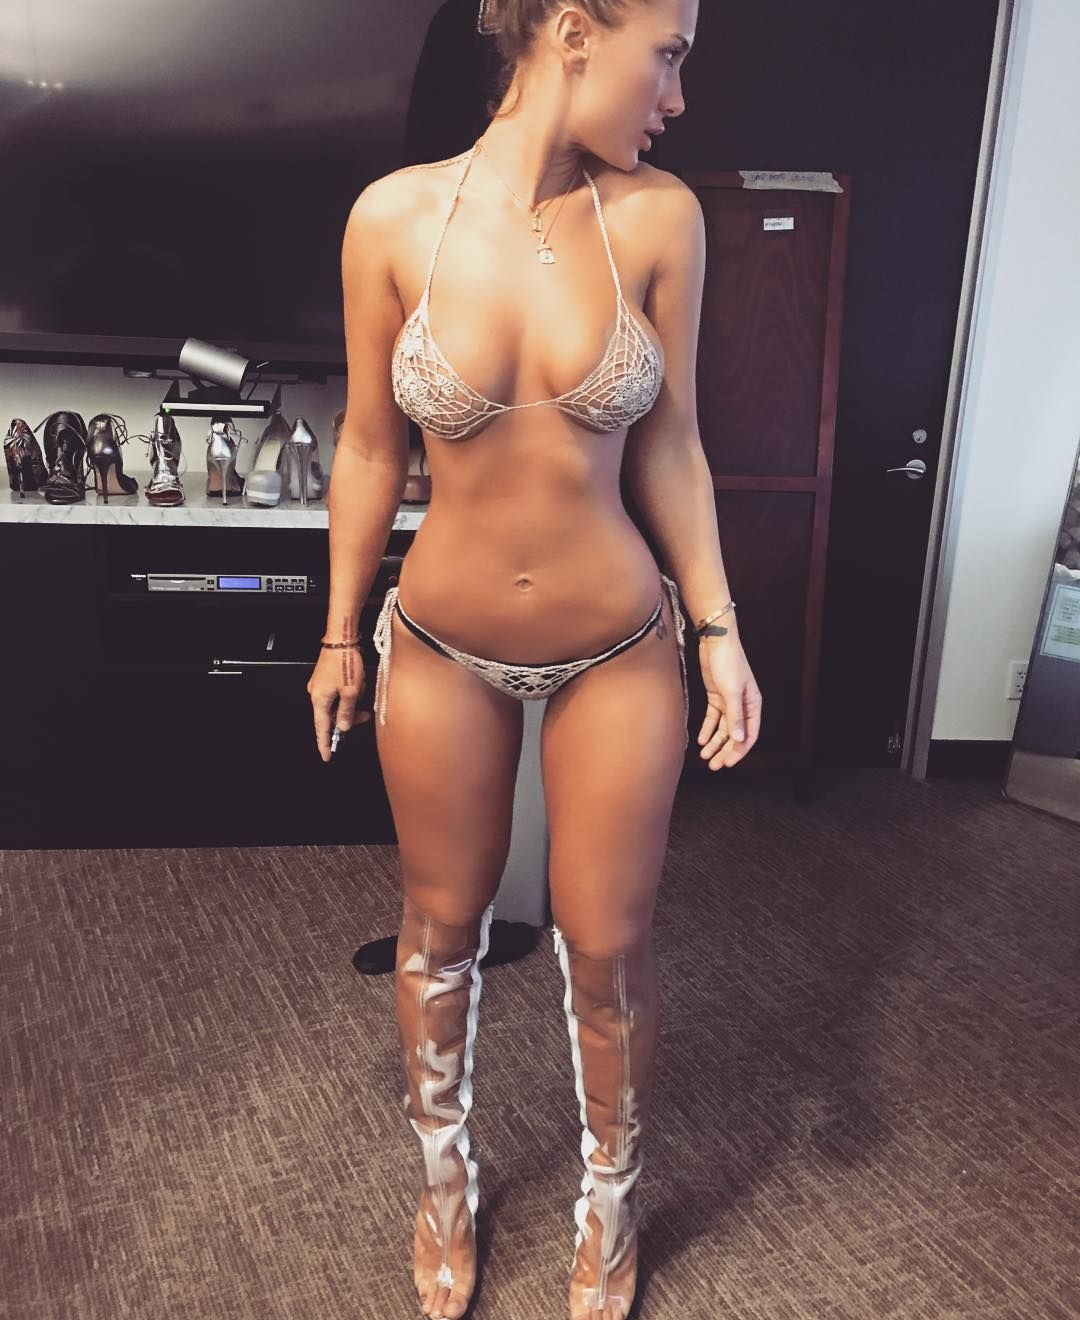 Niykee heaton instagram new images